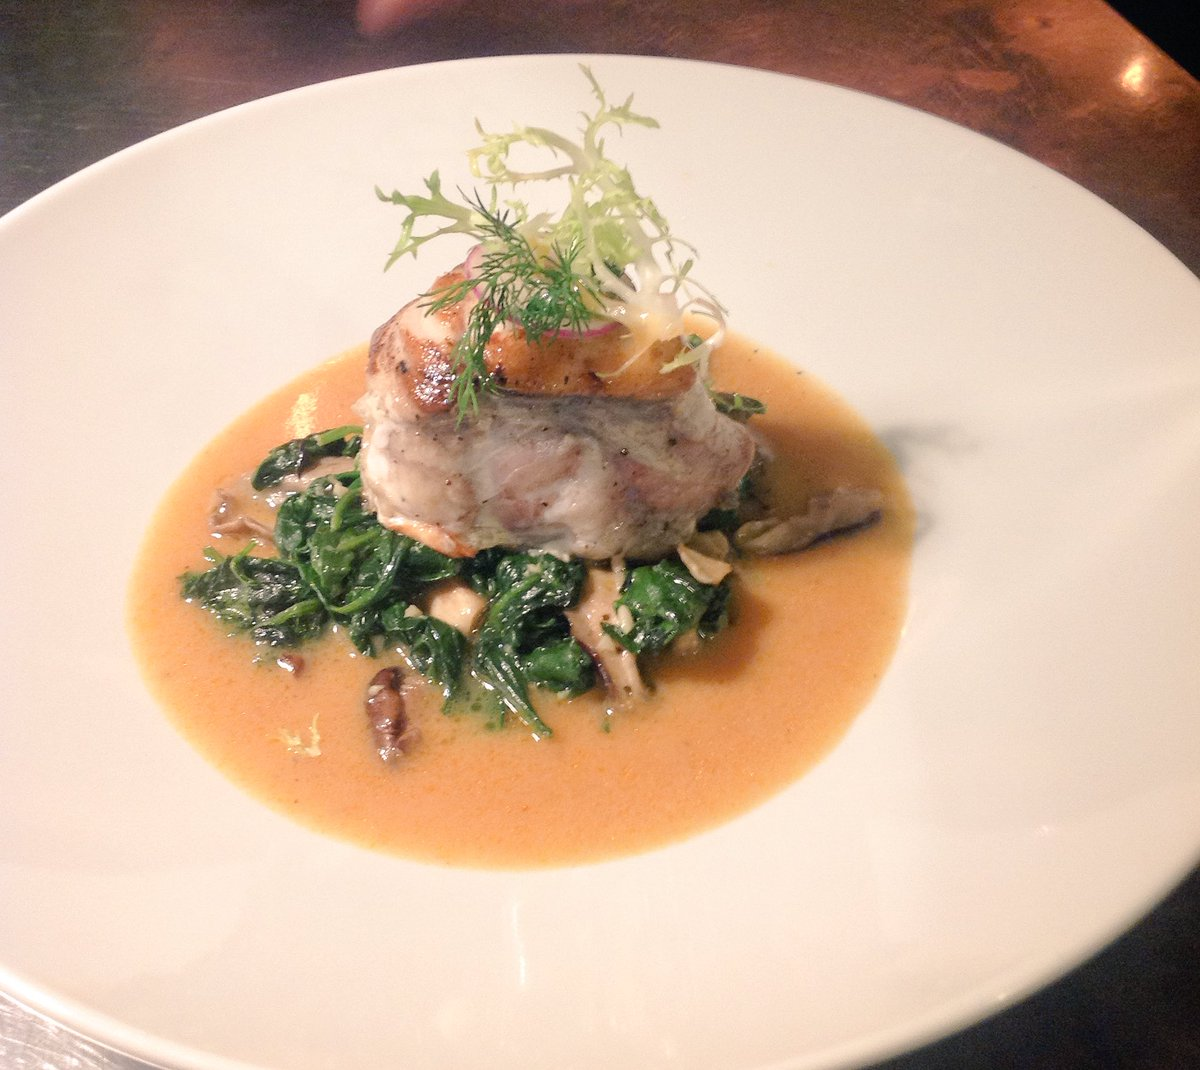 Our today&#39; special: monk fish w/ lobster bisque, spinach &amp; mushroom. #platdujour <br>http://pic.twitter.com/Dnh7ffURQI